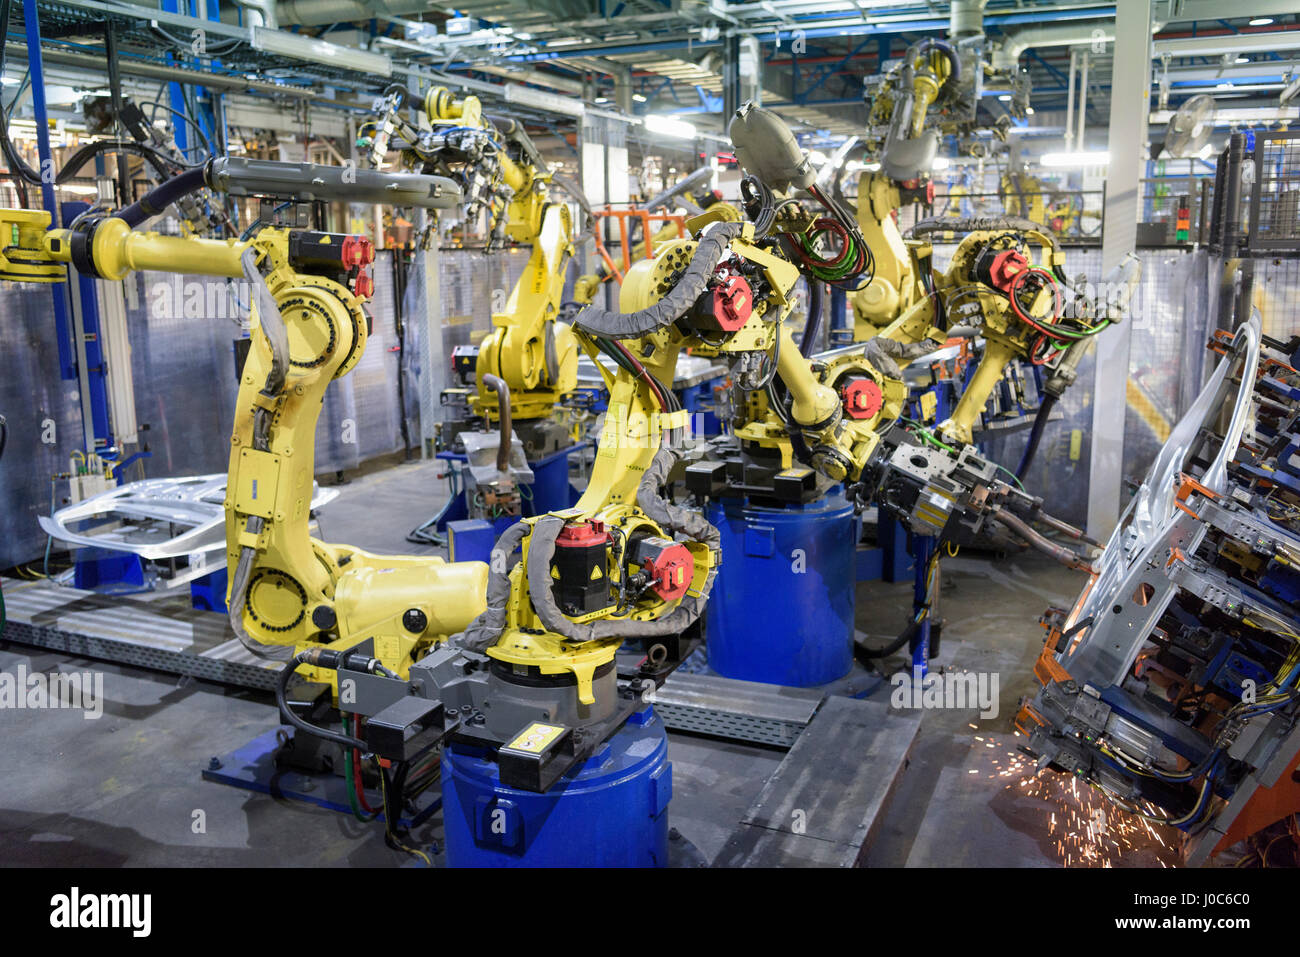 Robots welding body panels on production line in car factory - Stock Image